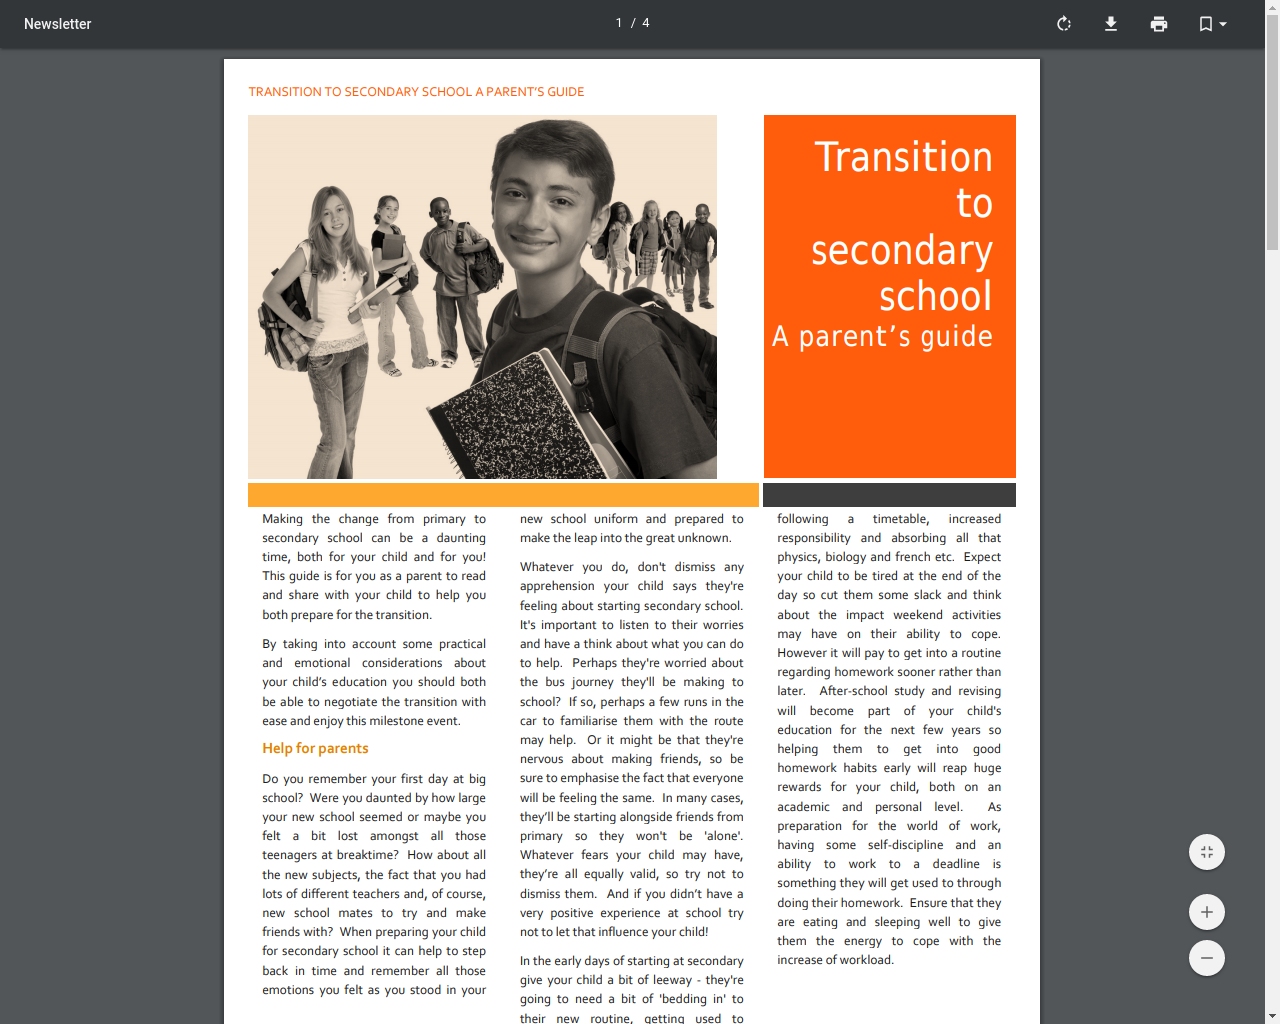 Parent's Guide for a transition to secondary school